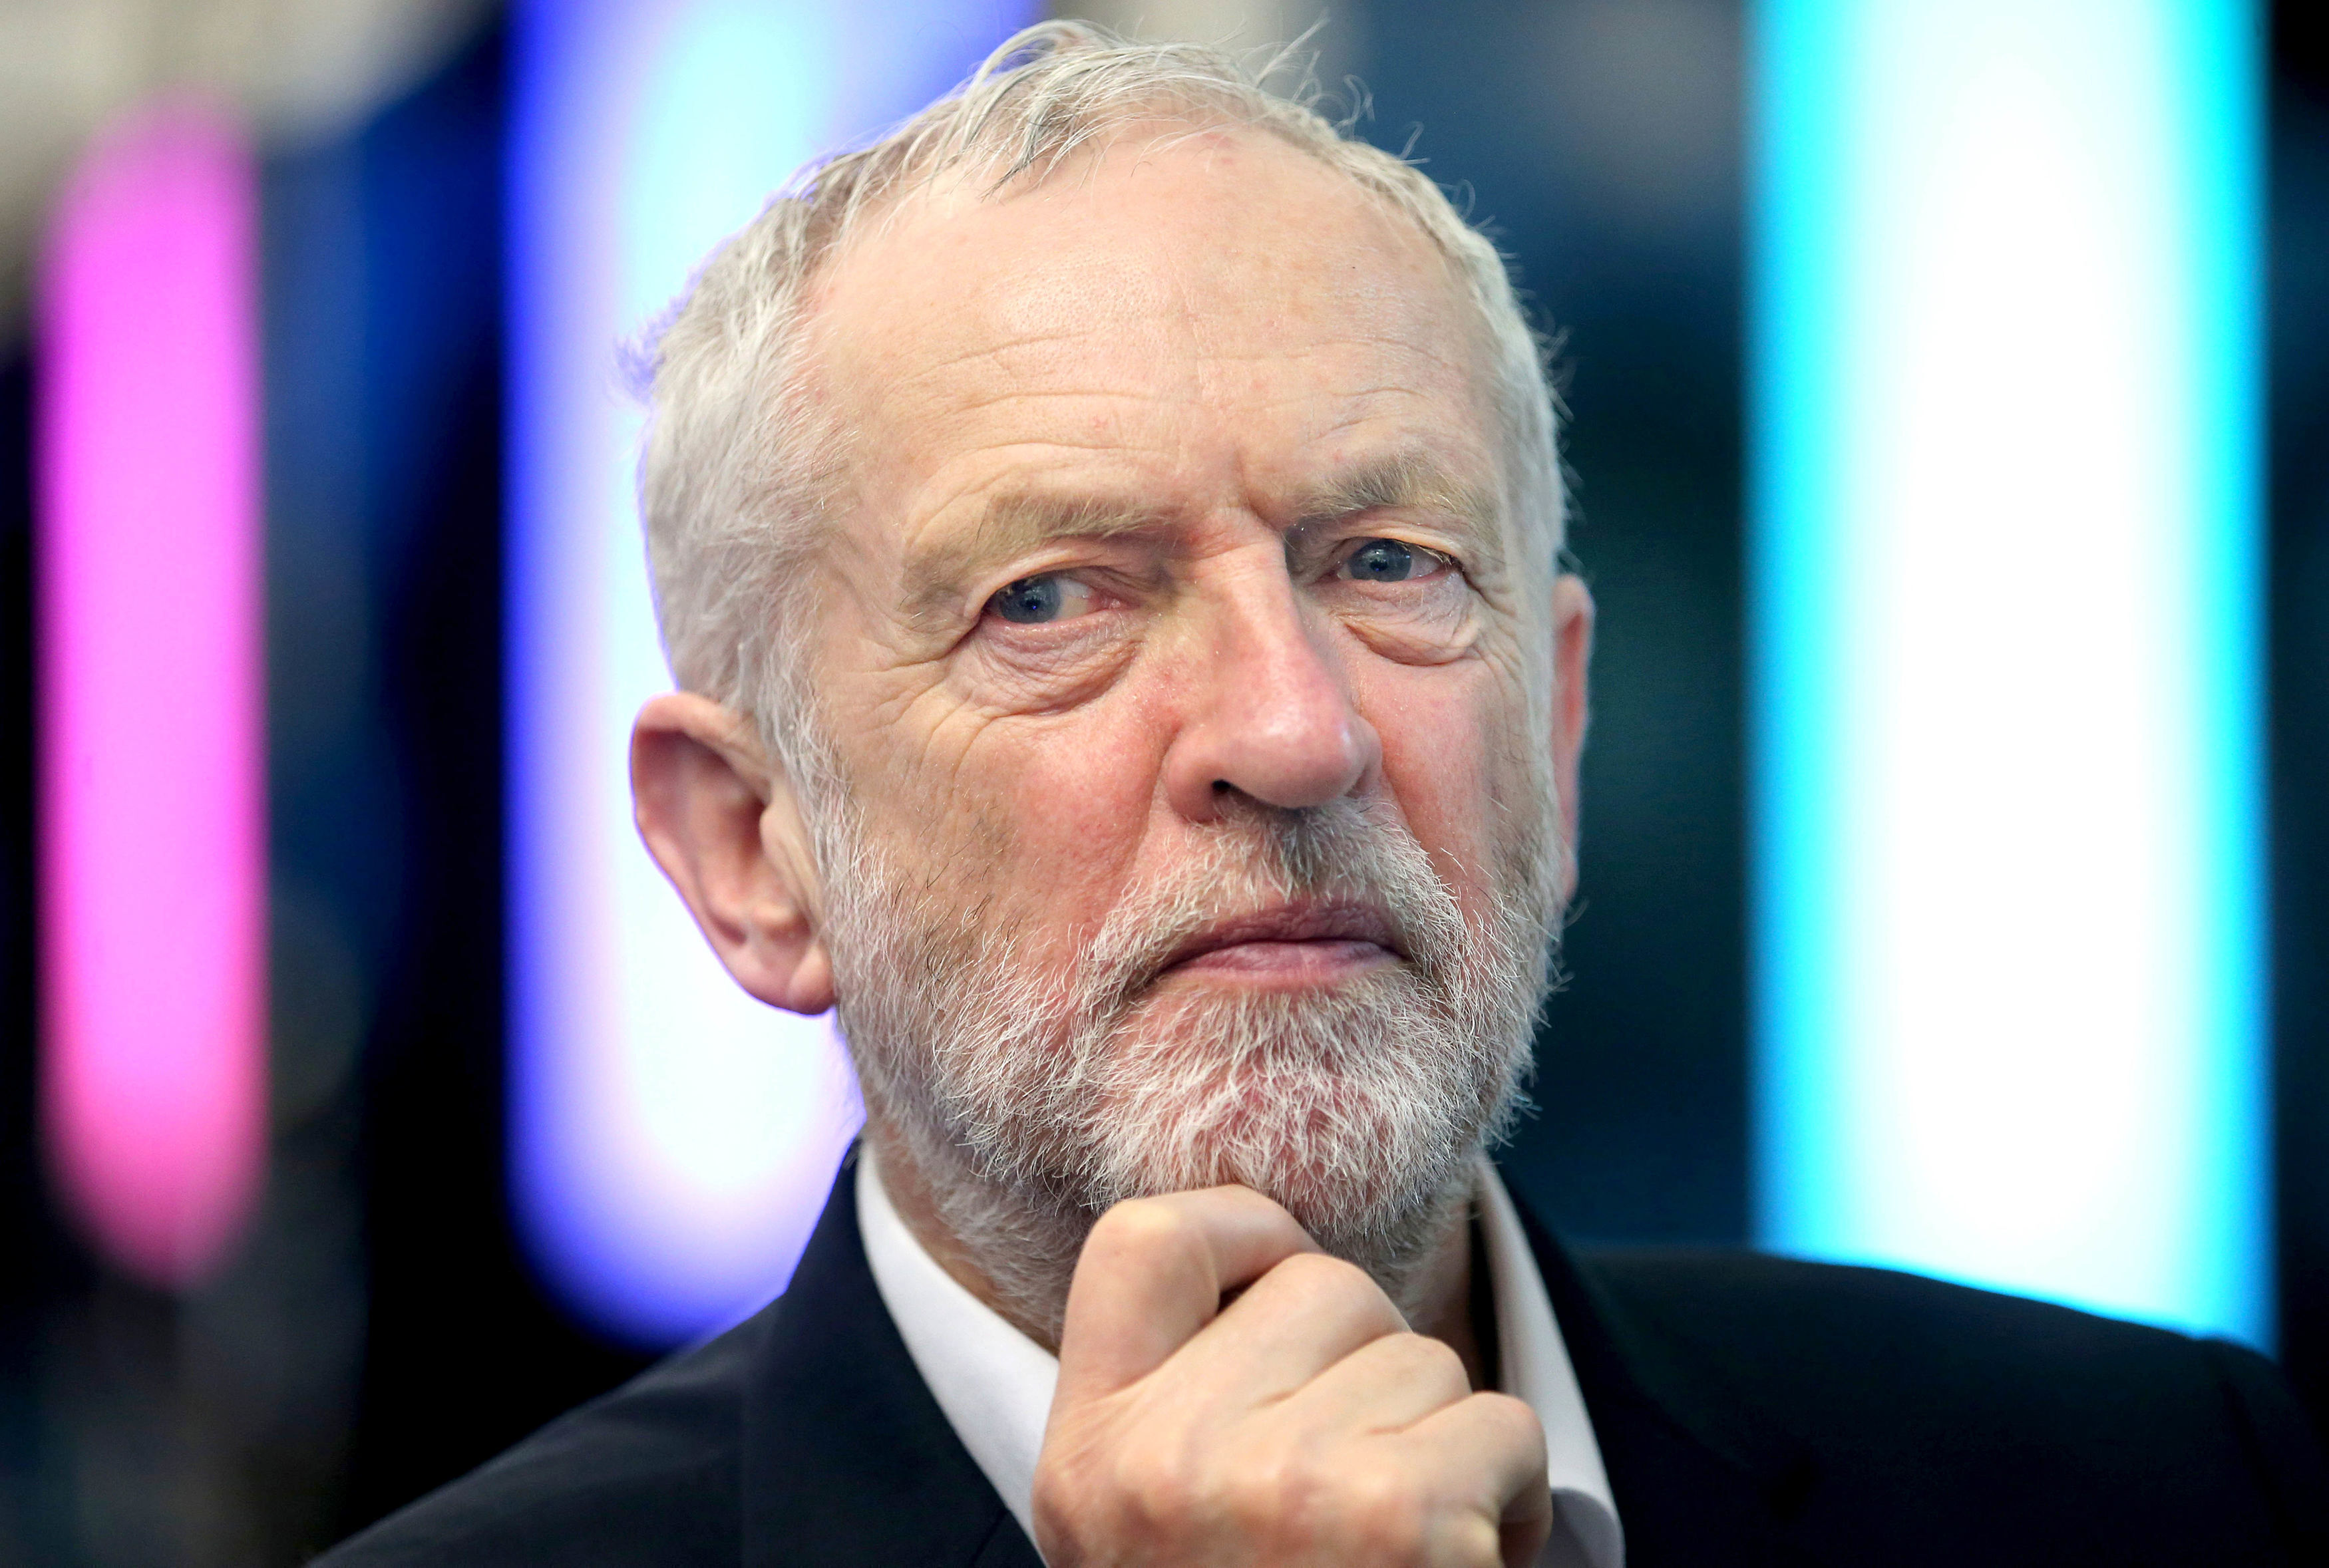 Brexit: Jeremy Corbyn promises second vote if Labour members want one